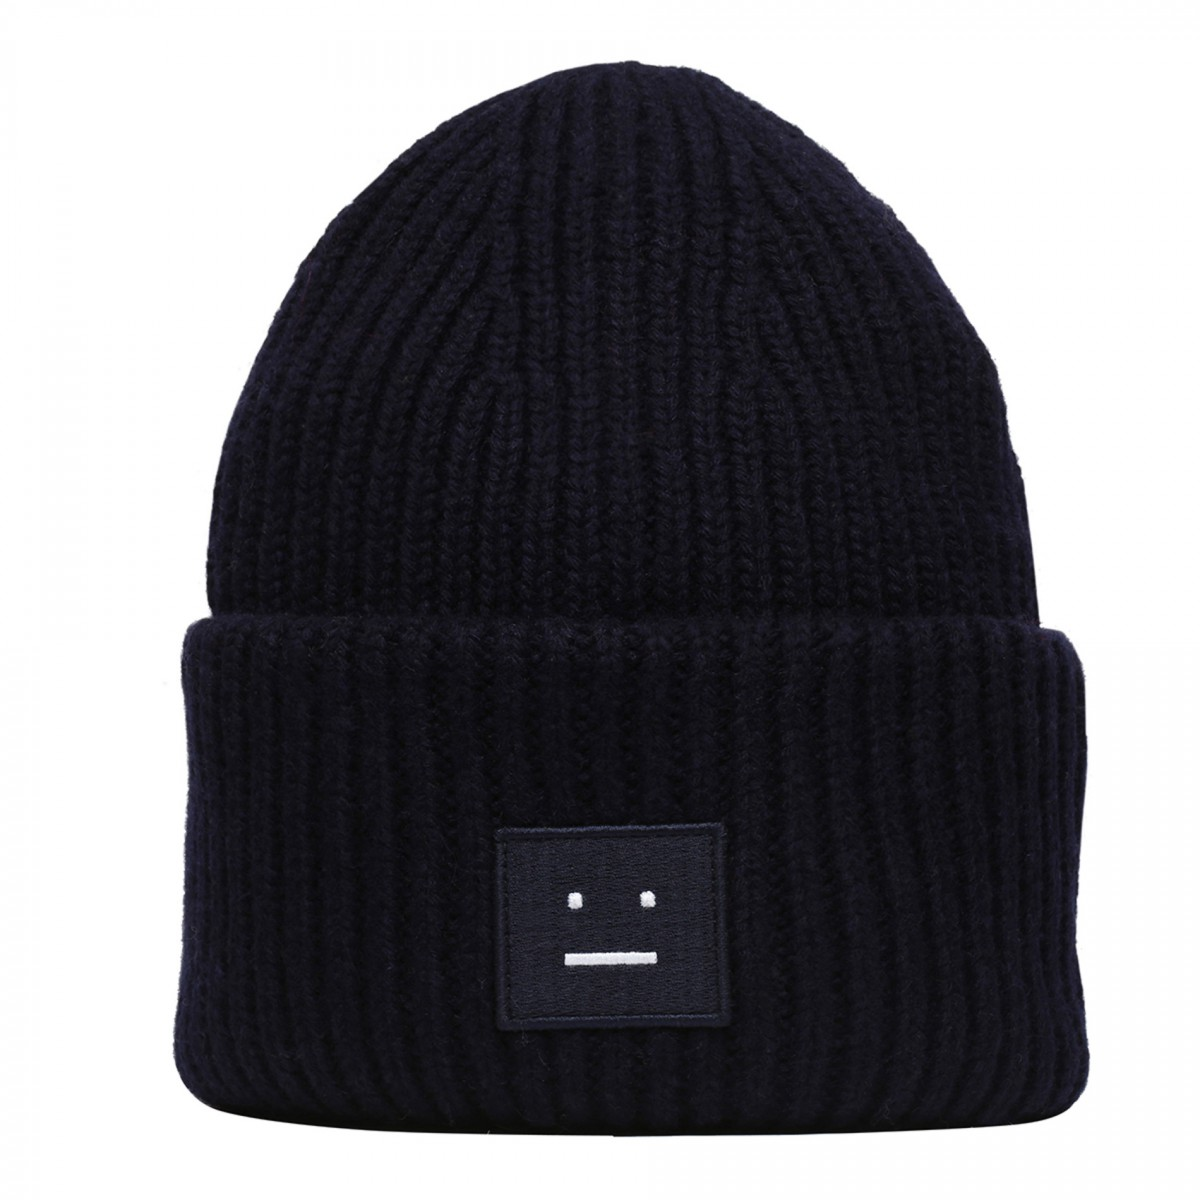 Black Acne Winter Beanie